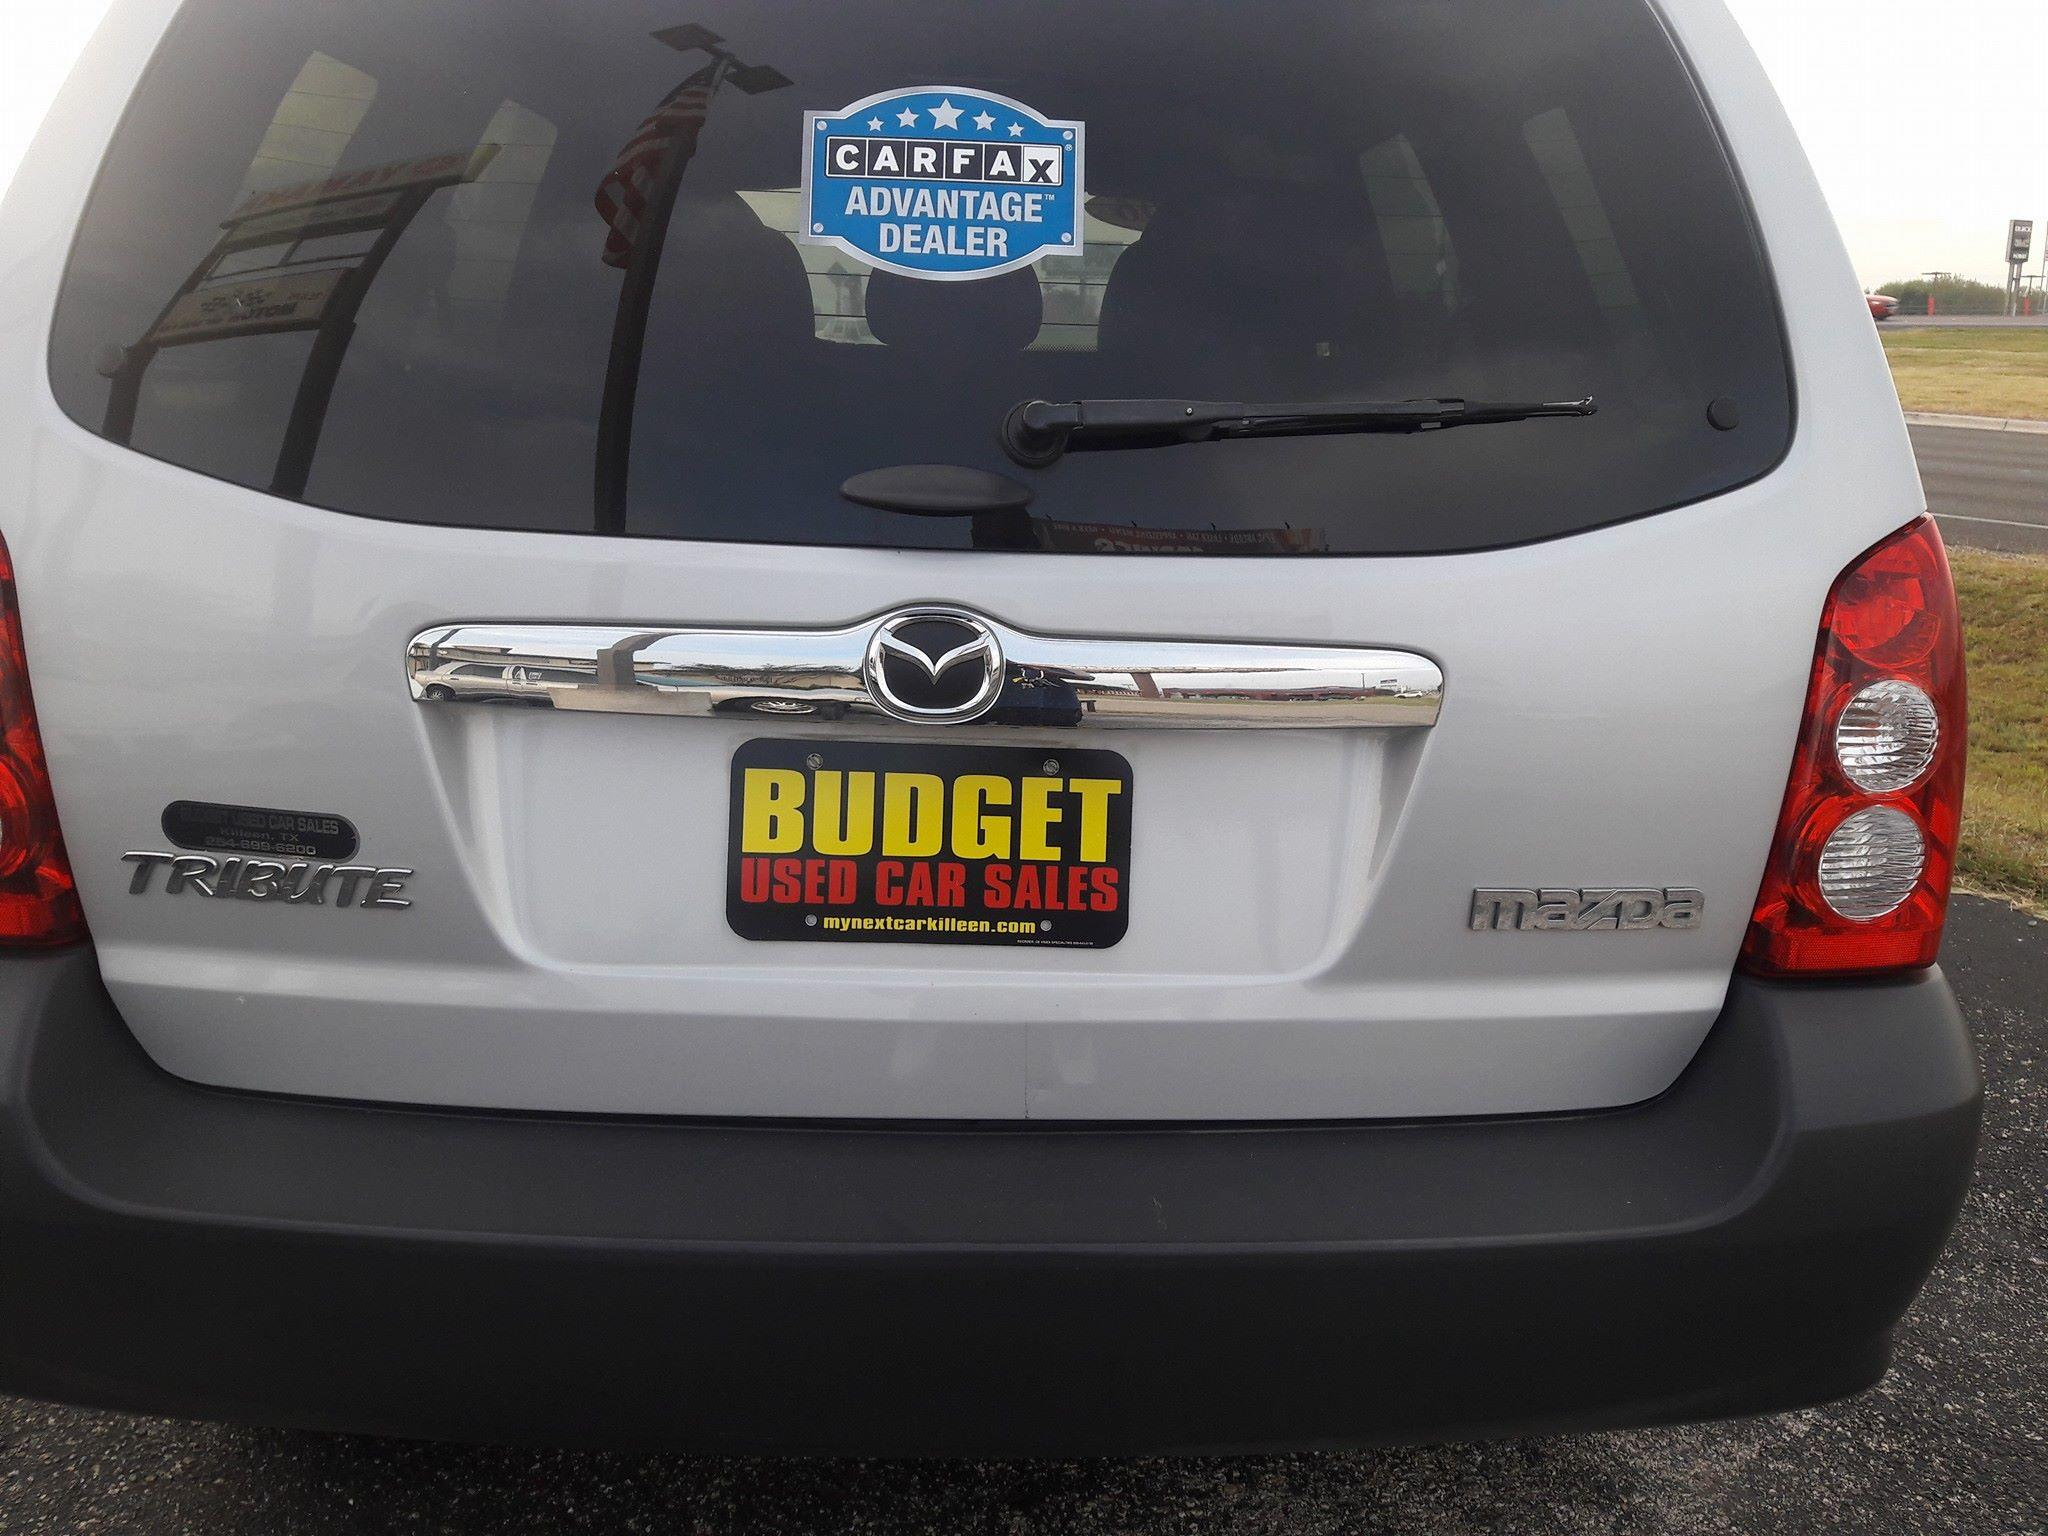 Budget Used Car Sales - Killeen, TX - Business Page